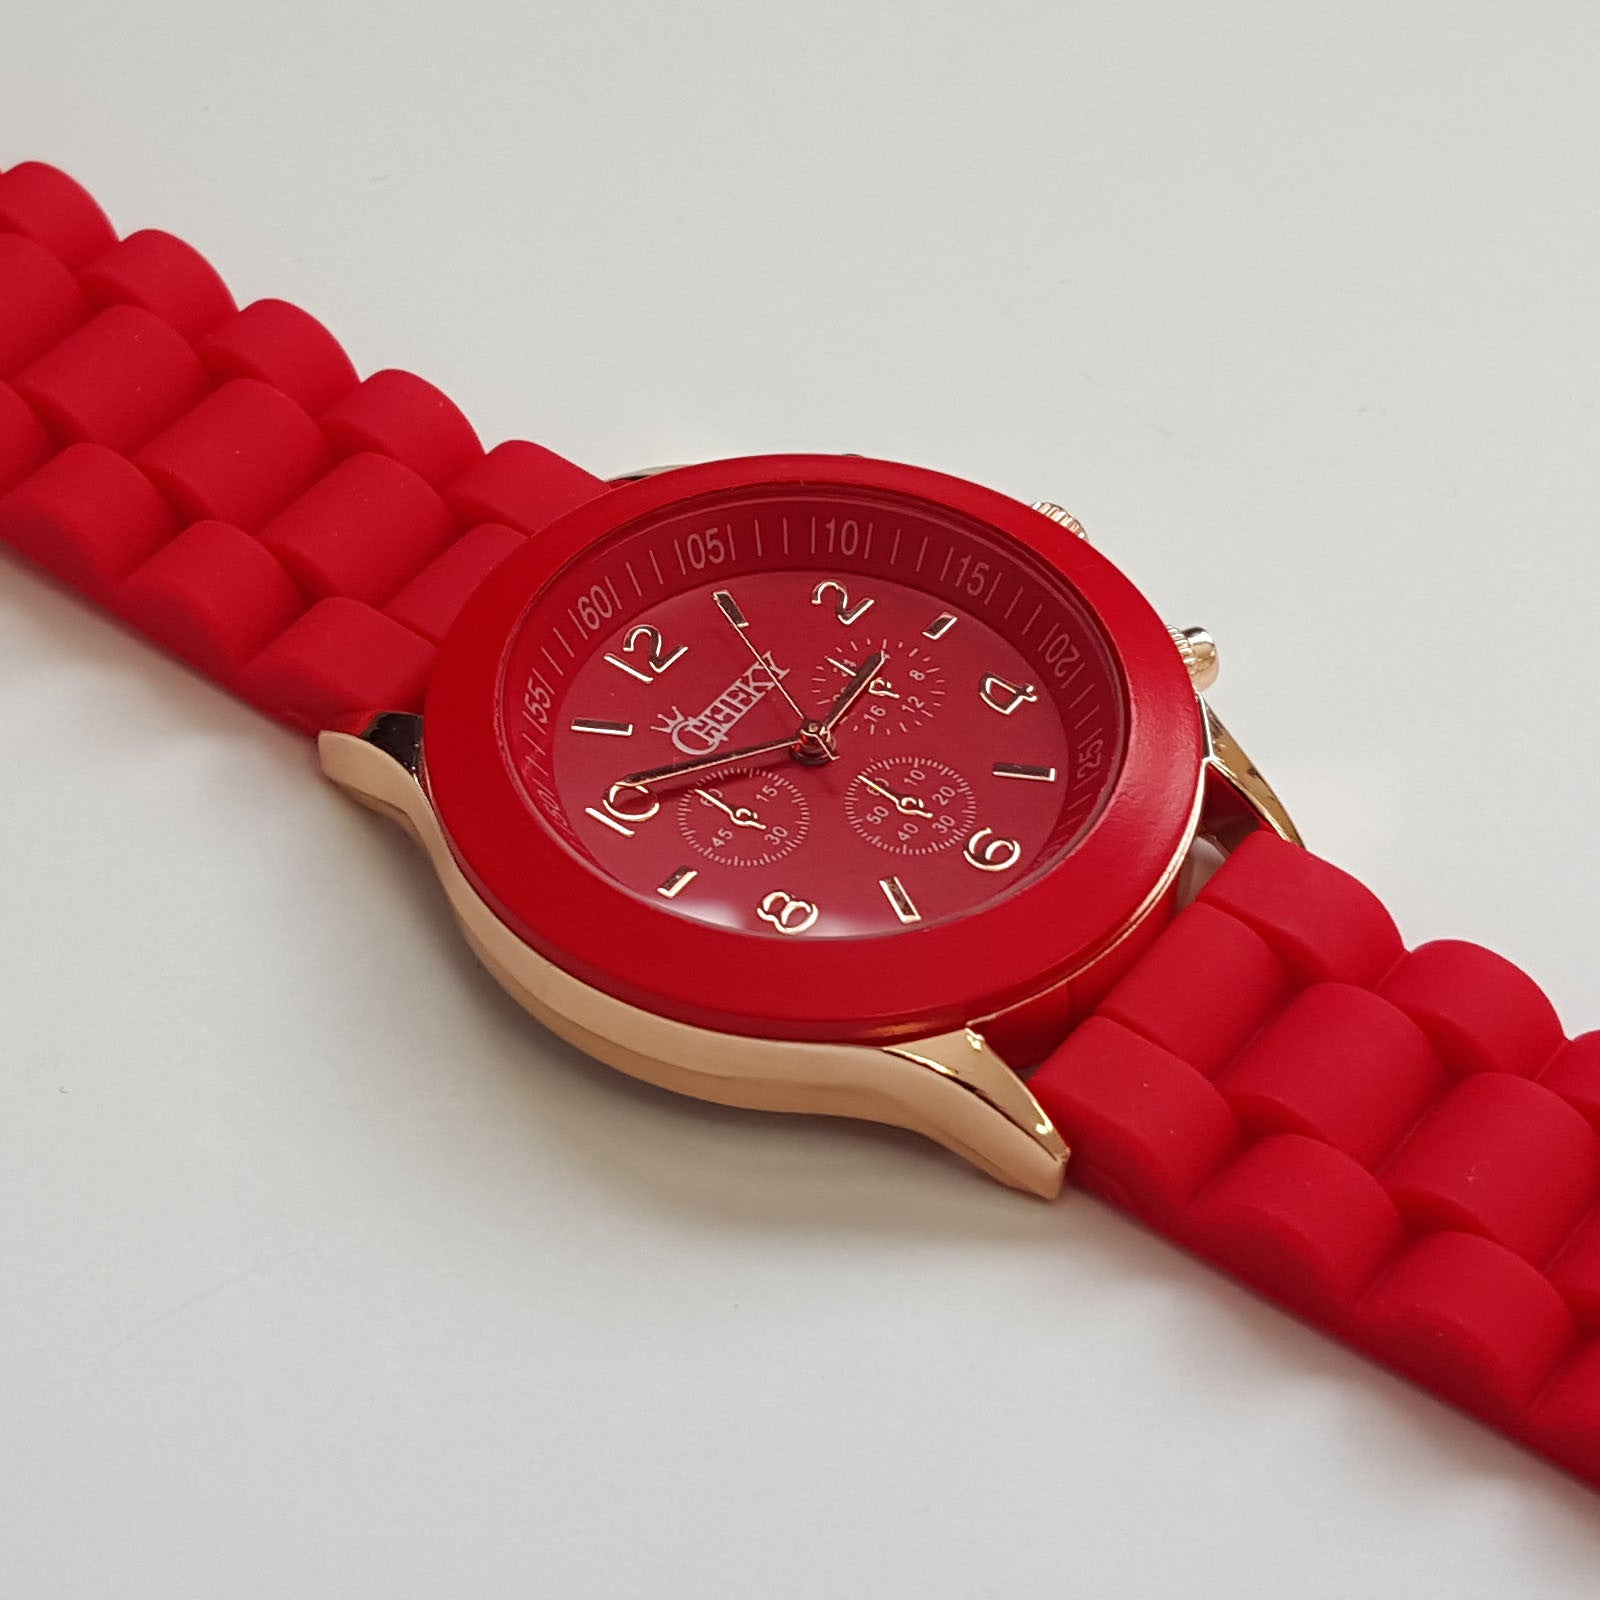 stylish mens red silicone w rose gold fashion watch by cheeky he stylish mens red silicone w rose gold fashion watch by cheeky he 13